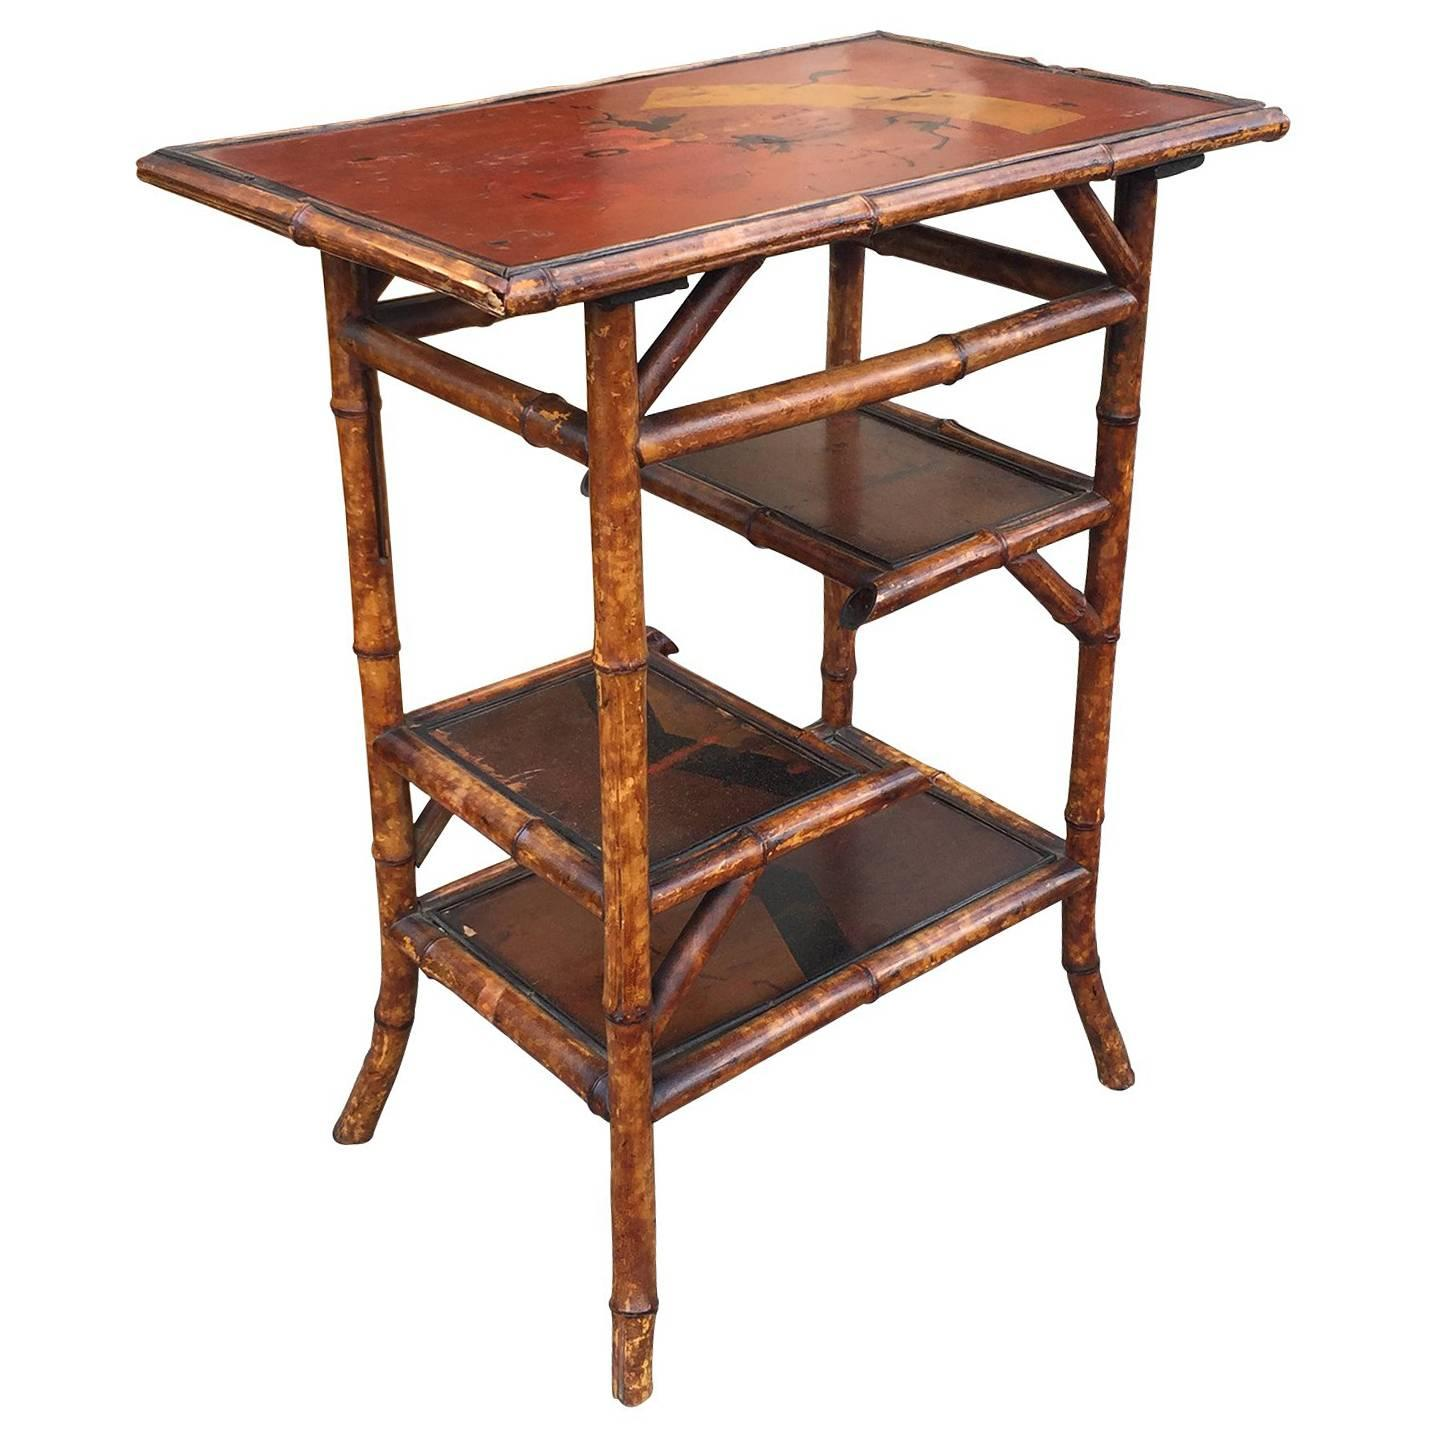 Small Chinese Bamboo Side Table With Painted Shelves, Circa 1900